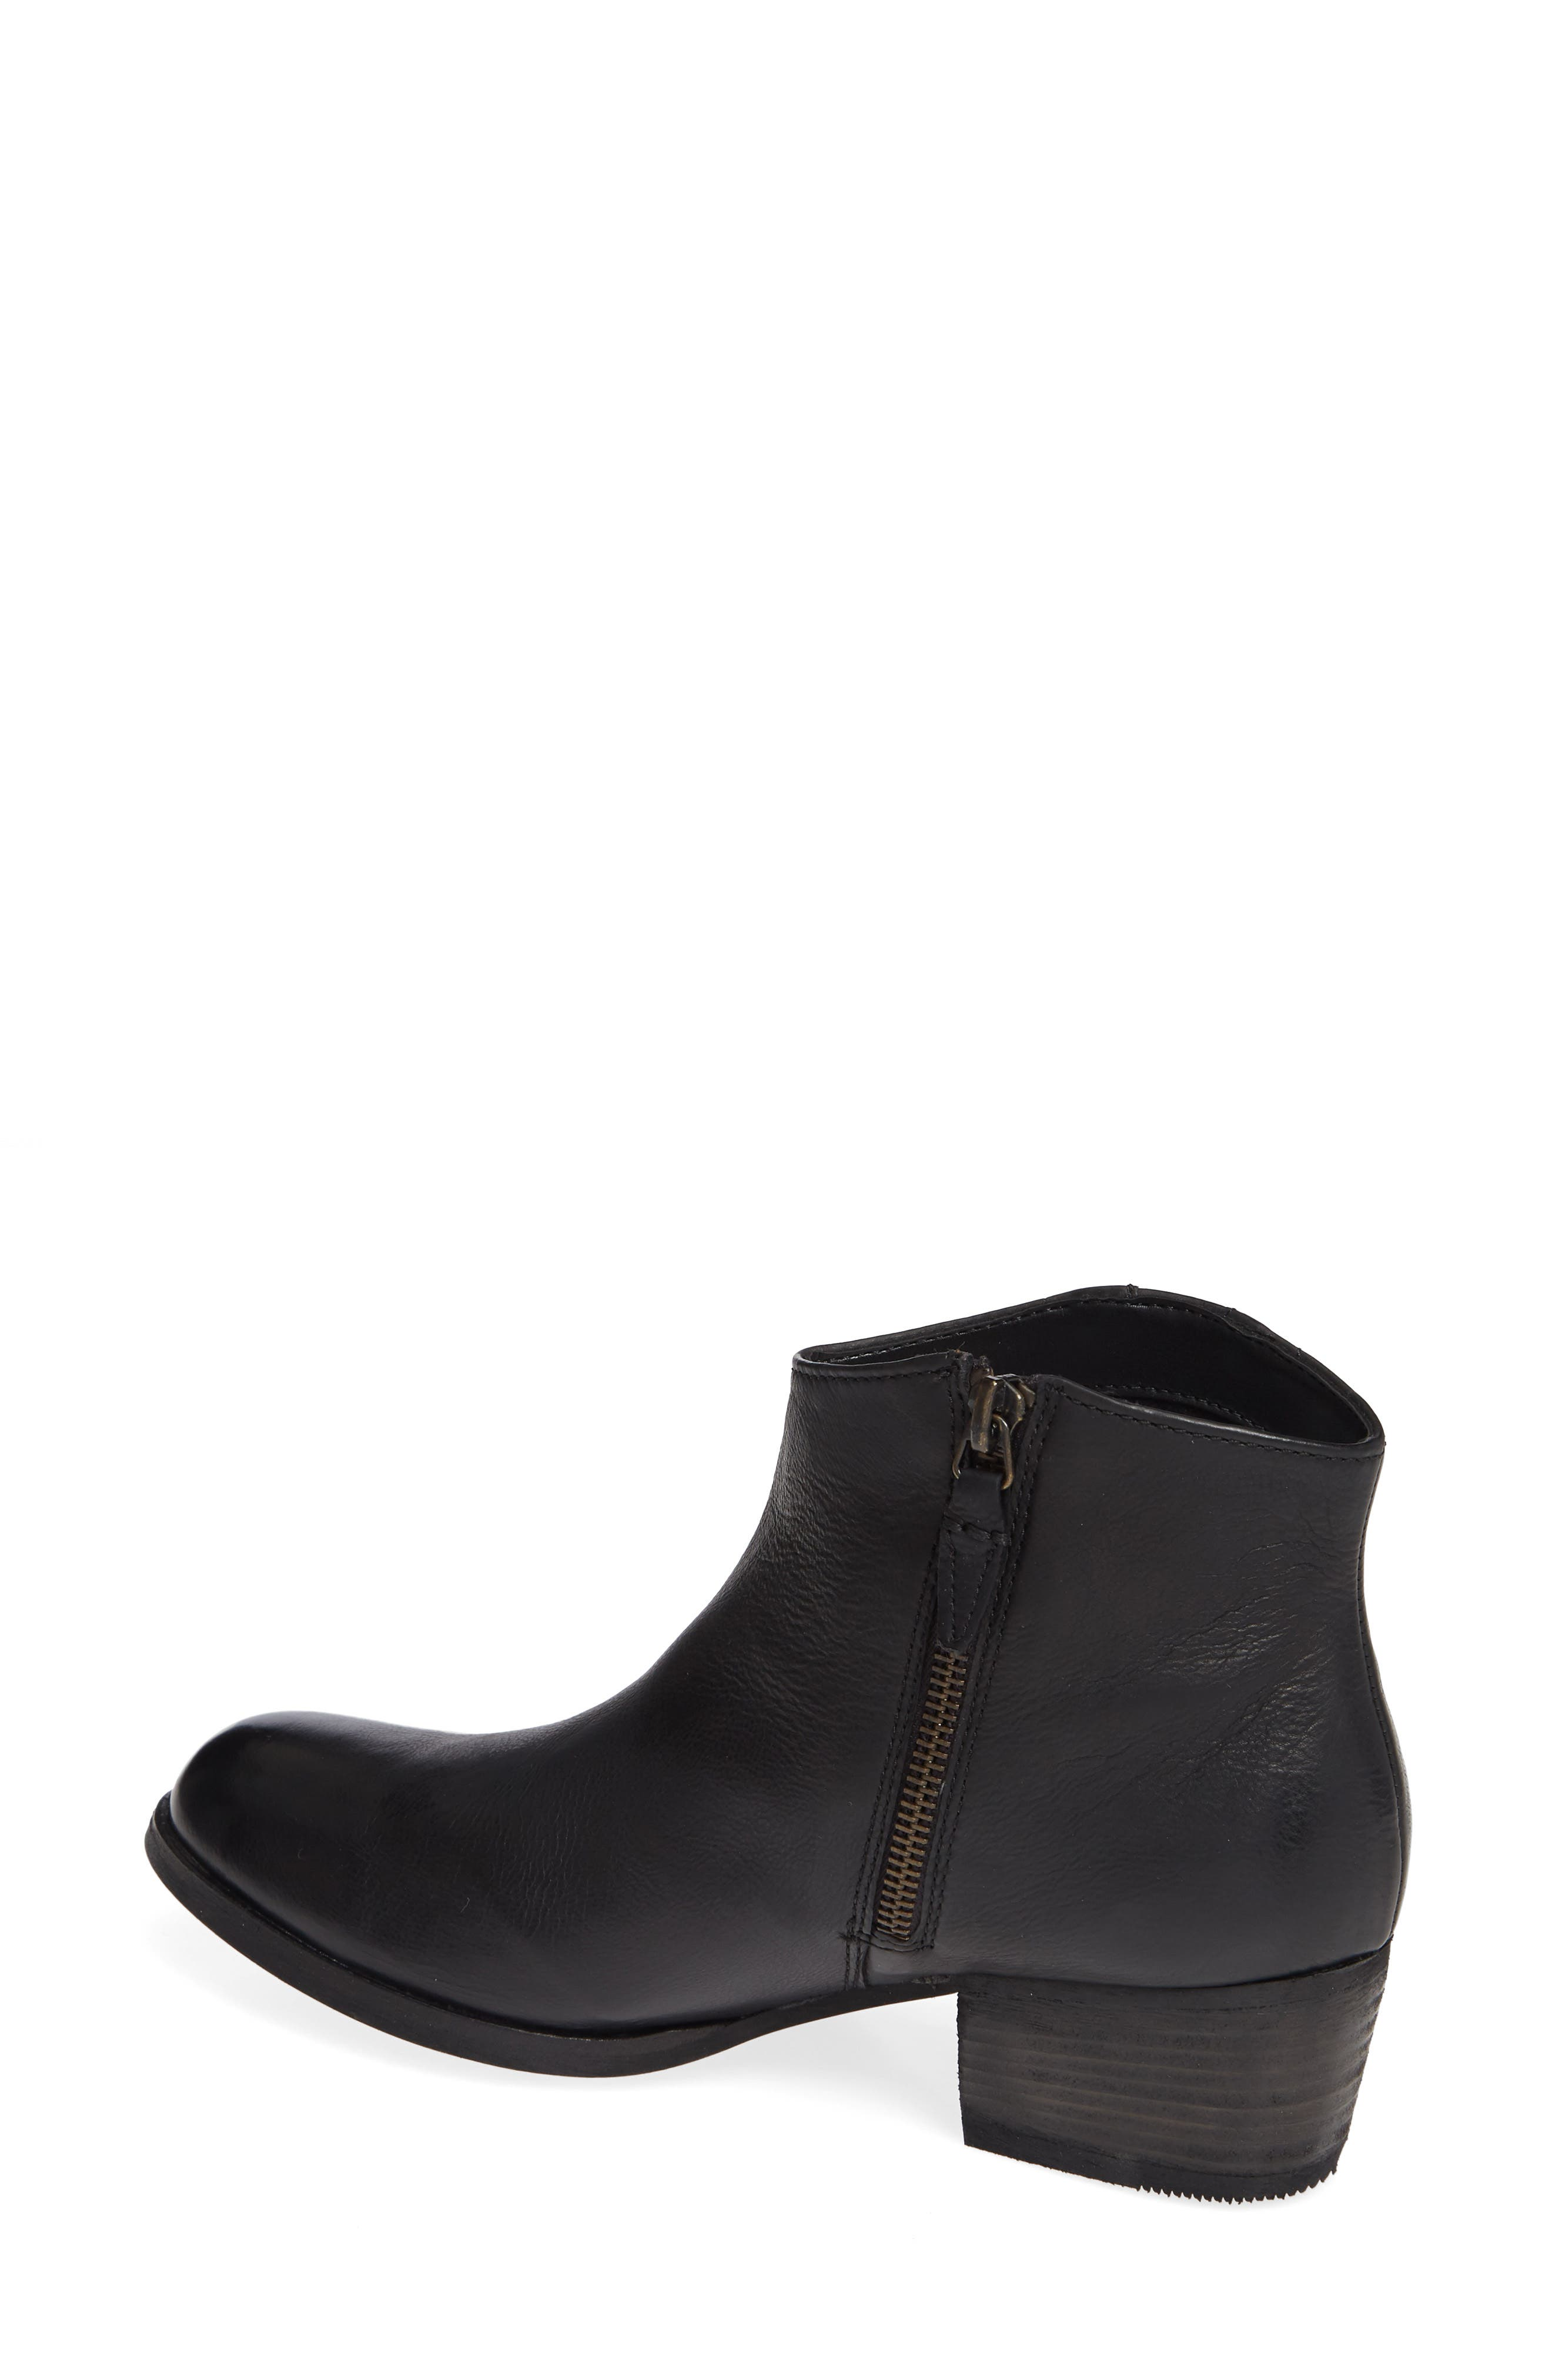 Maypearl Fawn Bootie,                             Alternate thumbnail 2, color,                             BLACK LEATHER